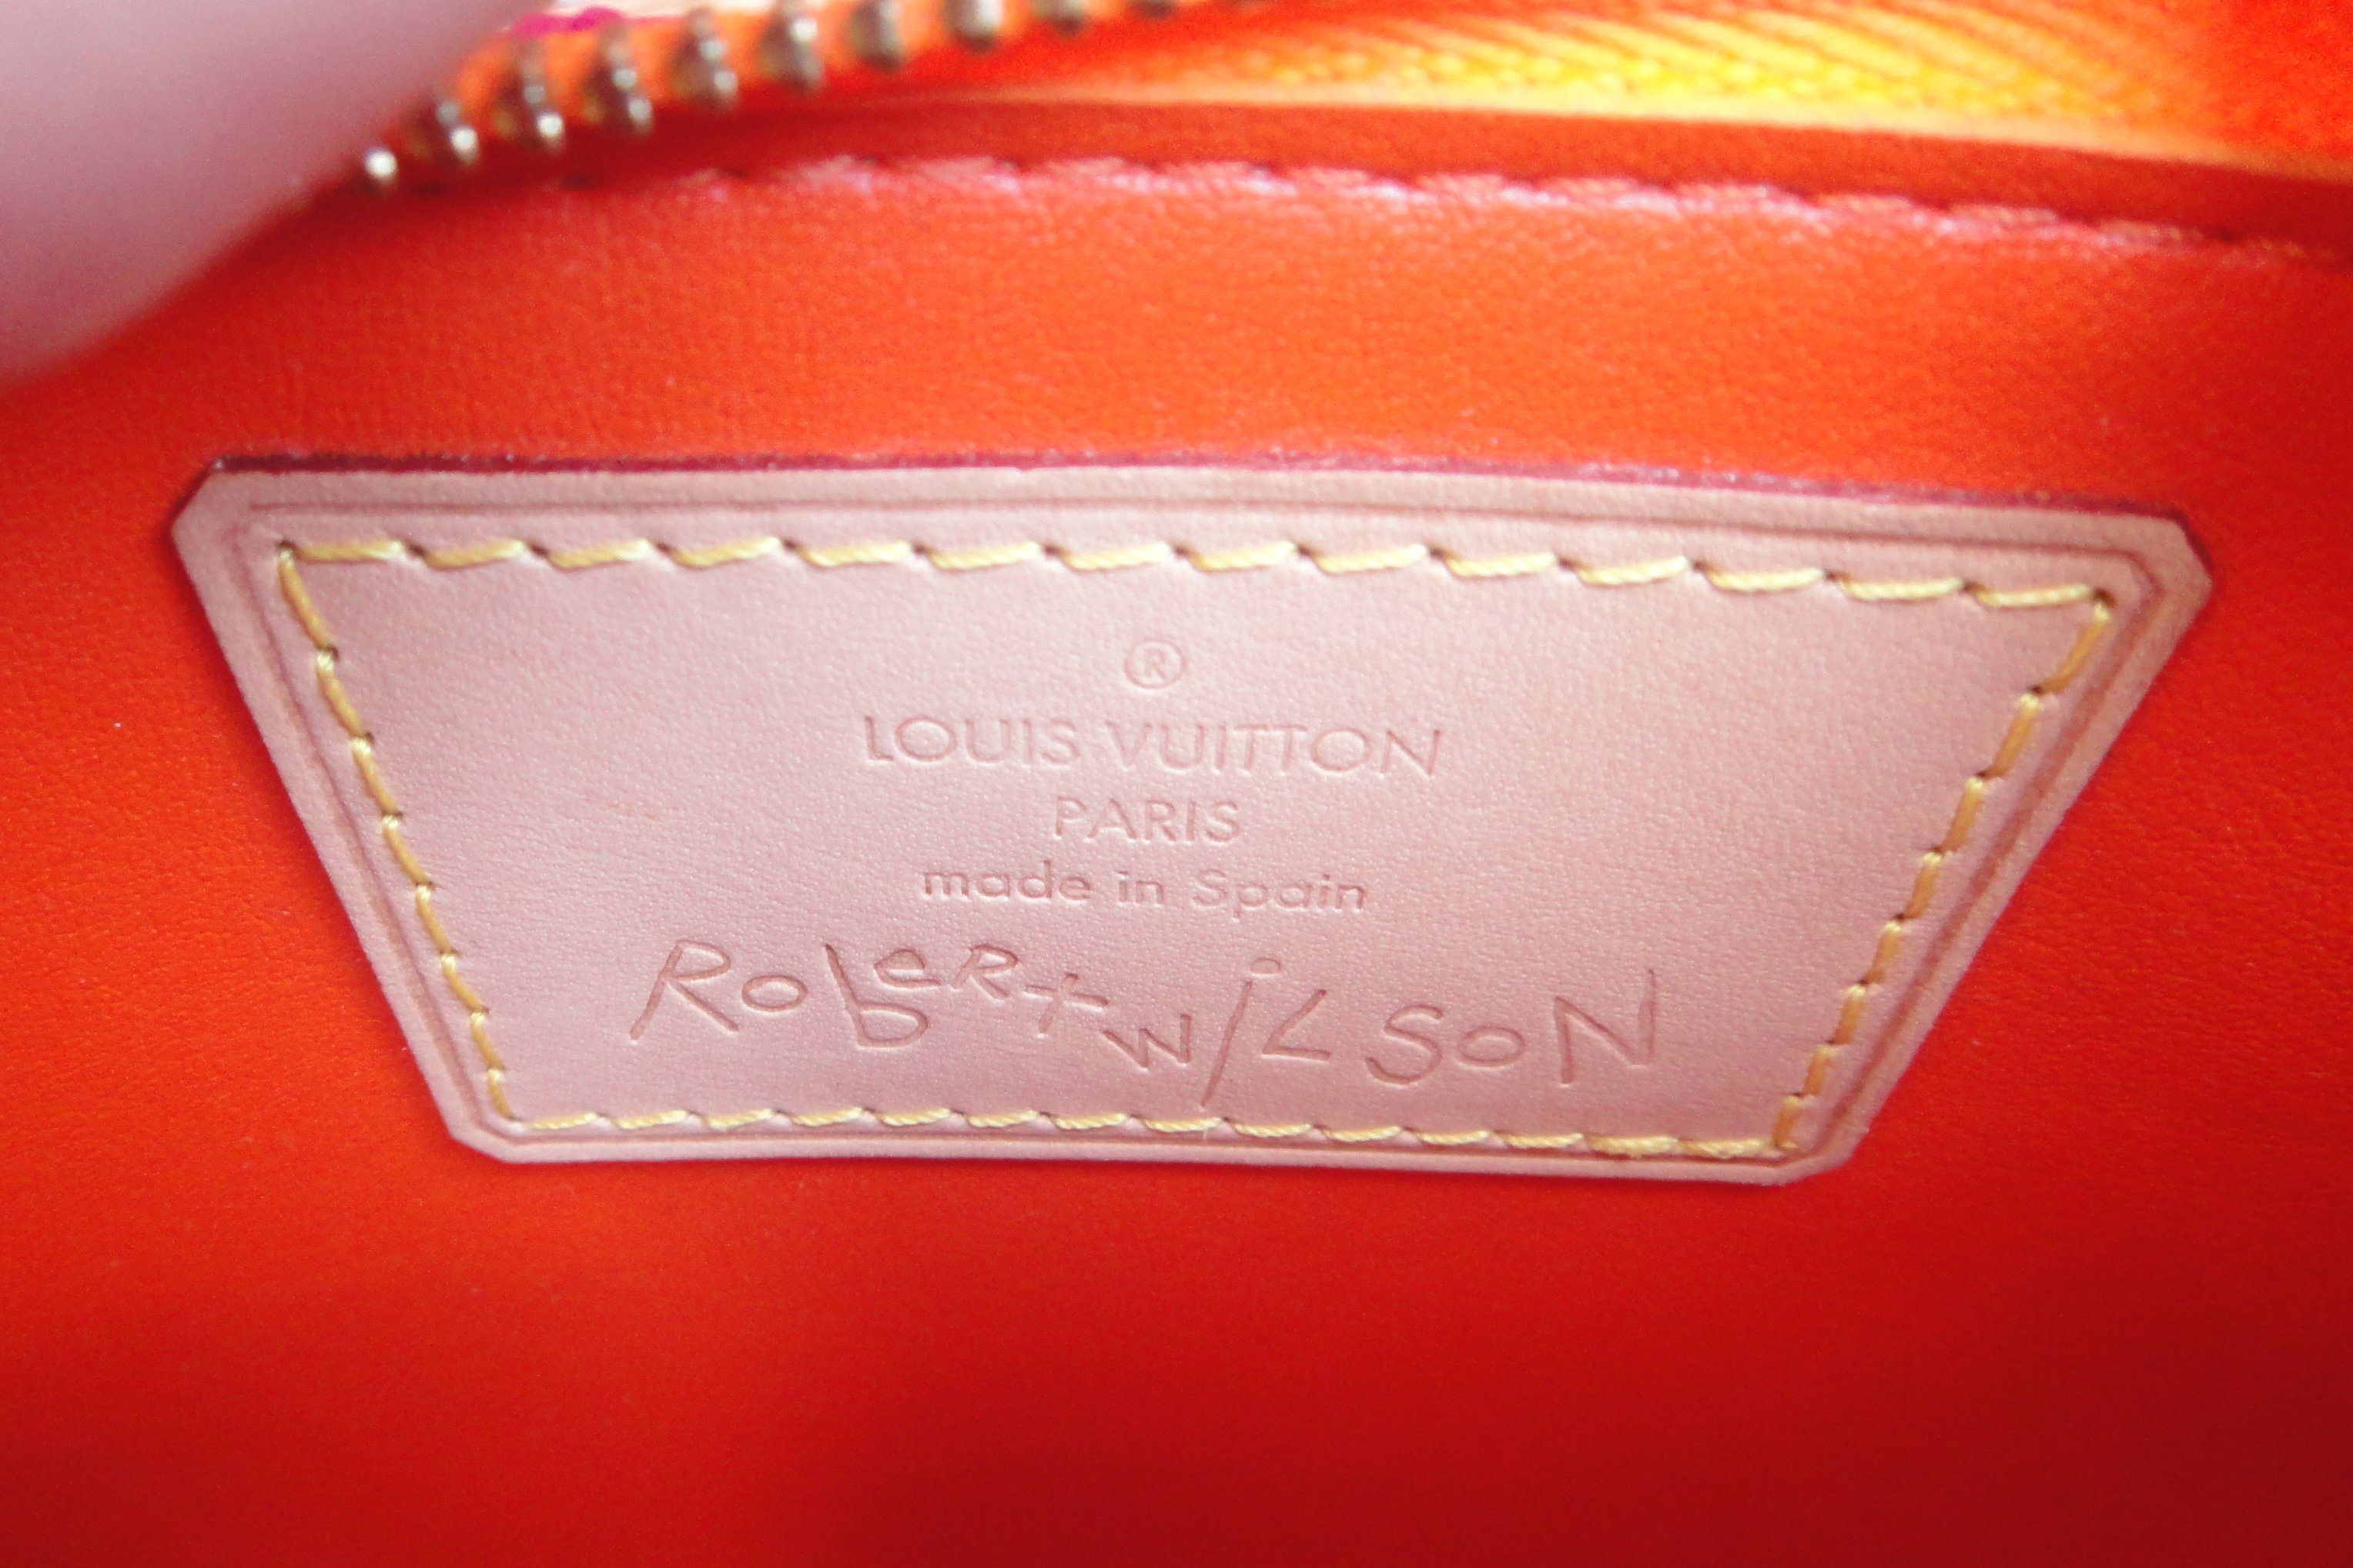 Louis Vuitton Robert Wilson tag / Schild